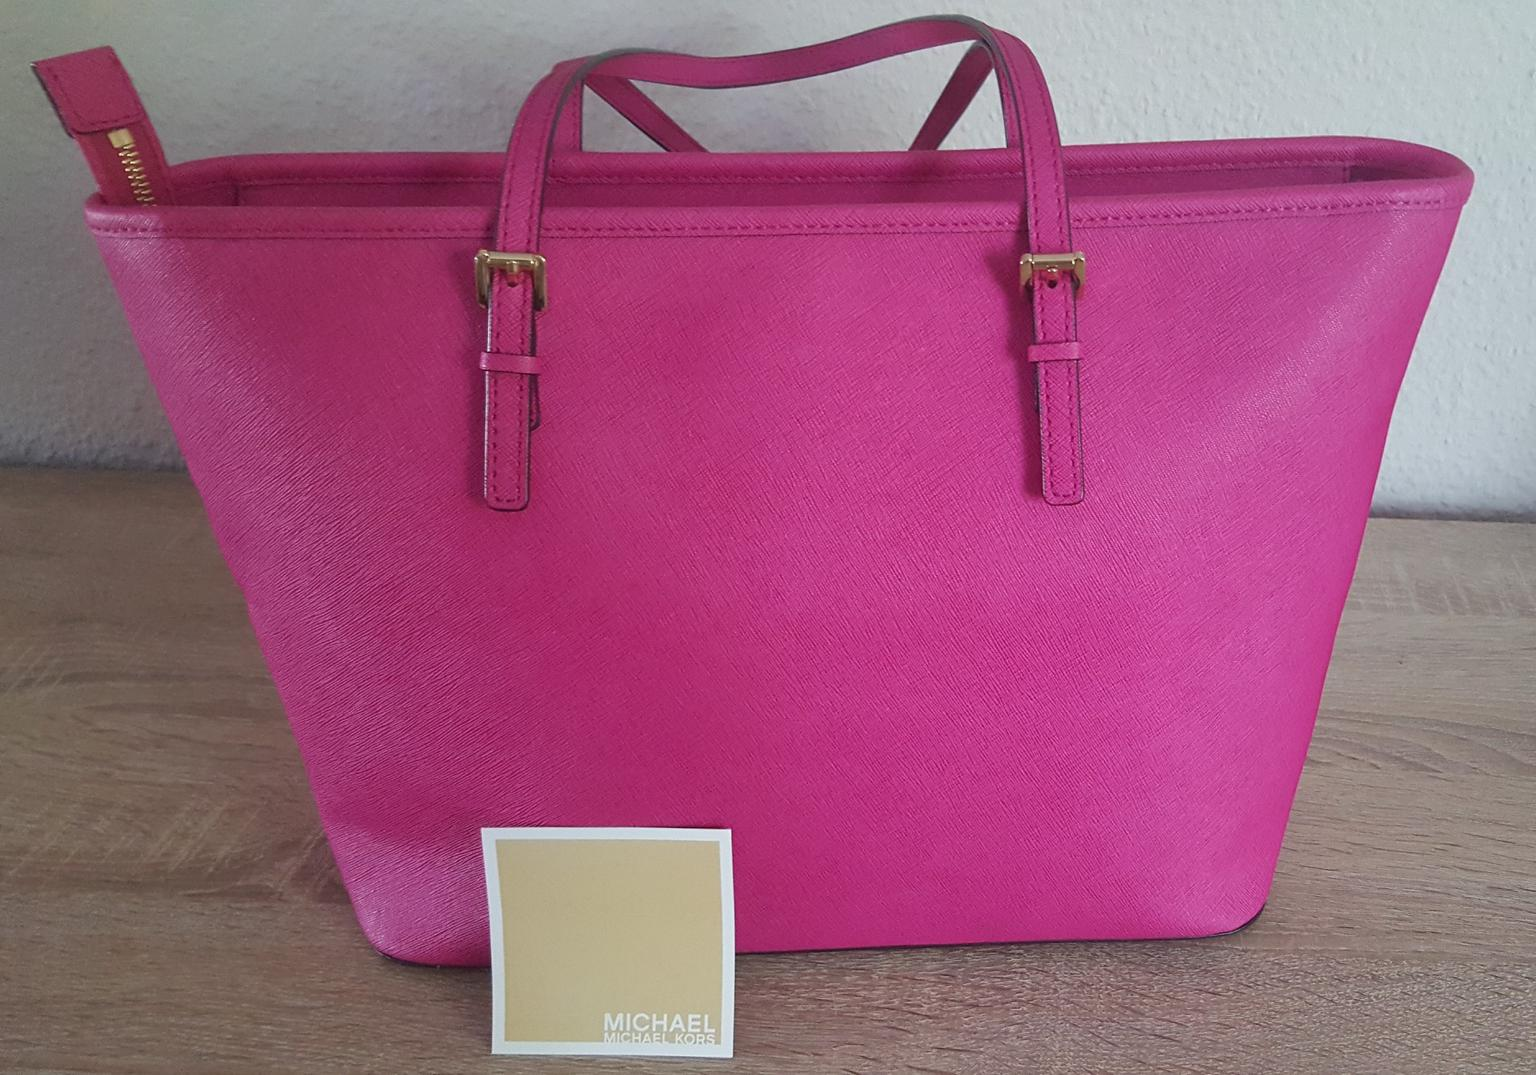 Michael Kors Tasche Pink Limited Edition